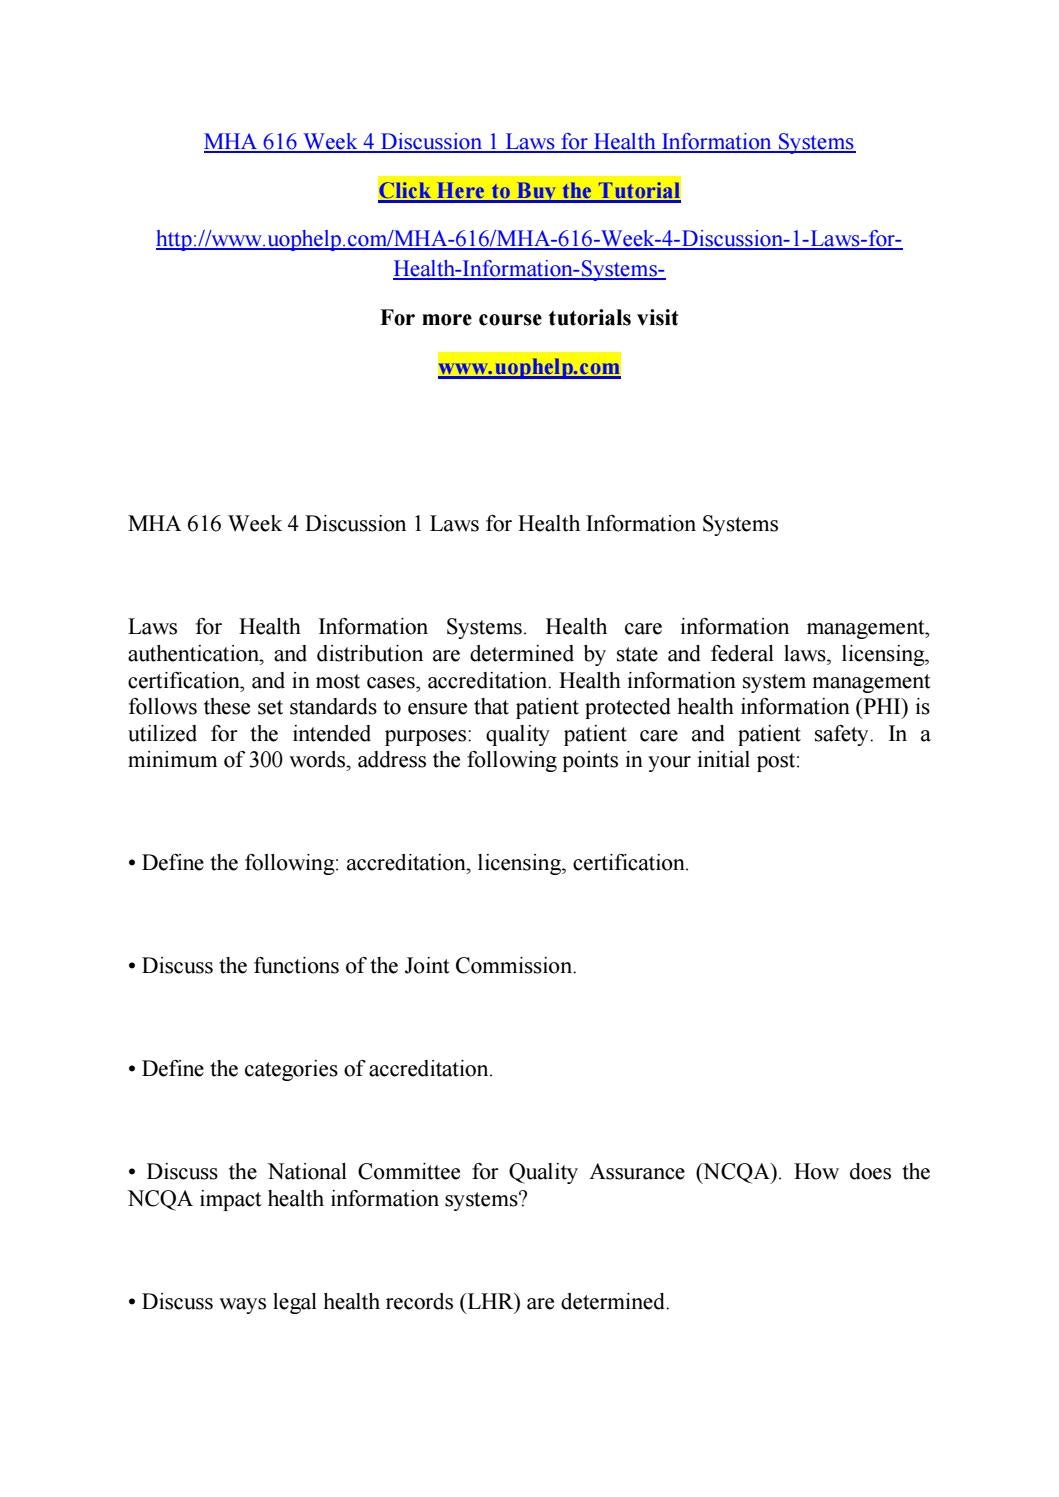 Mha 616 week 4 discussion 1 laws for health information systems by mha 616 week 4 discussion 1 laws for health information systems by pinck76 issuu xflitez Choice Image